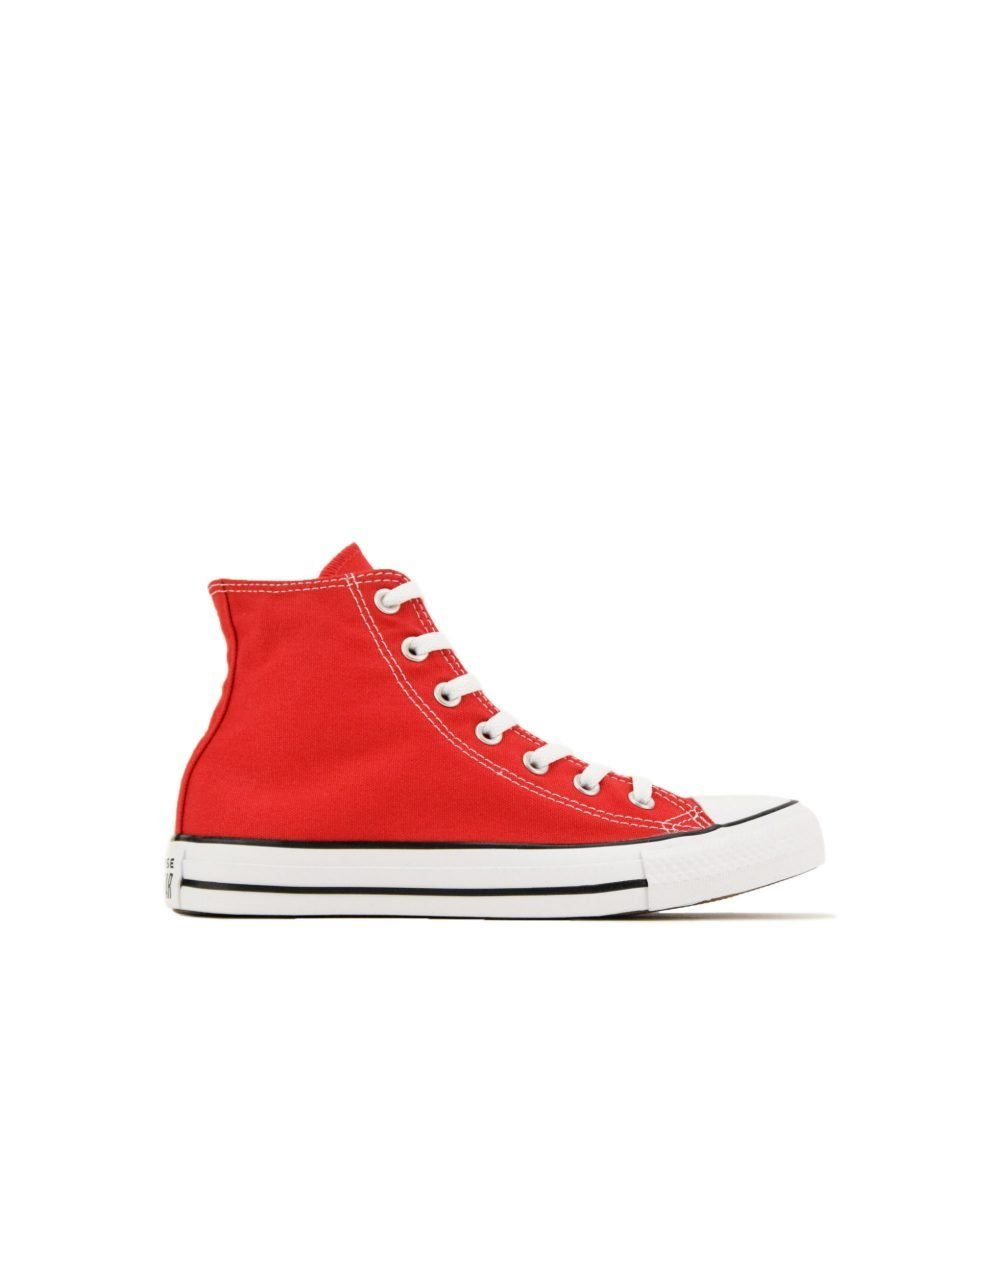 Converse Chuck Taylor All Star Hi (M9621C) Red